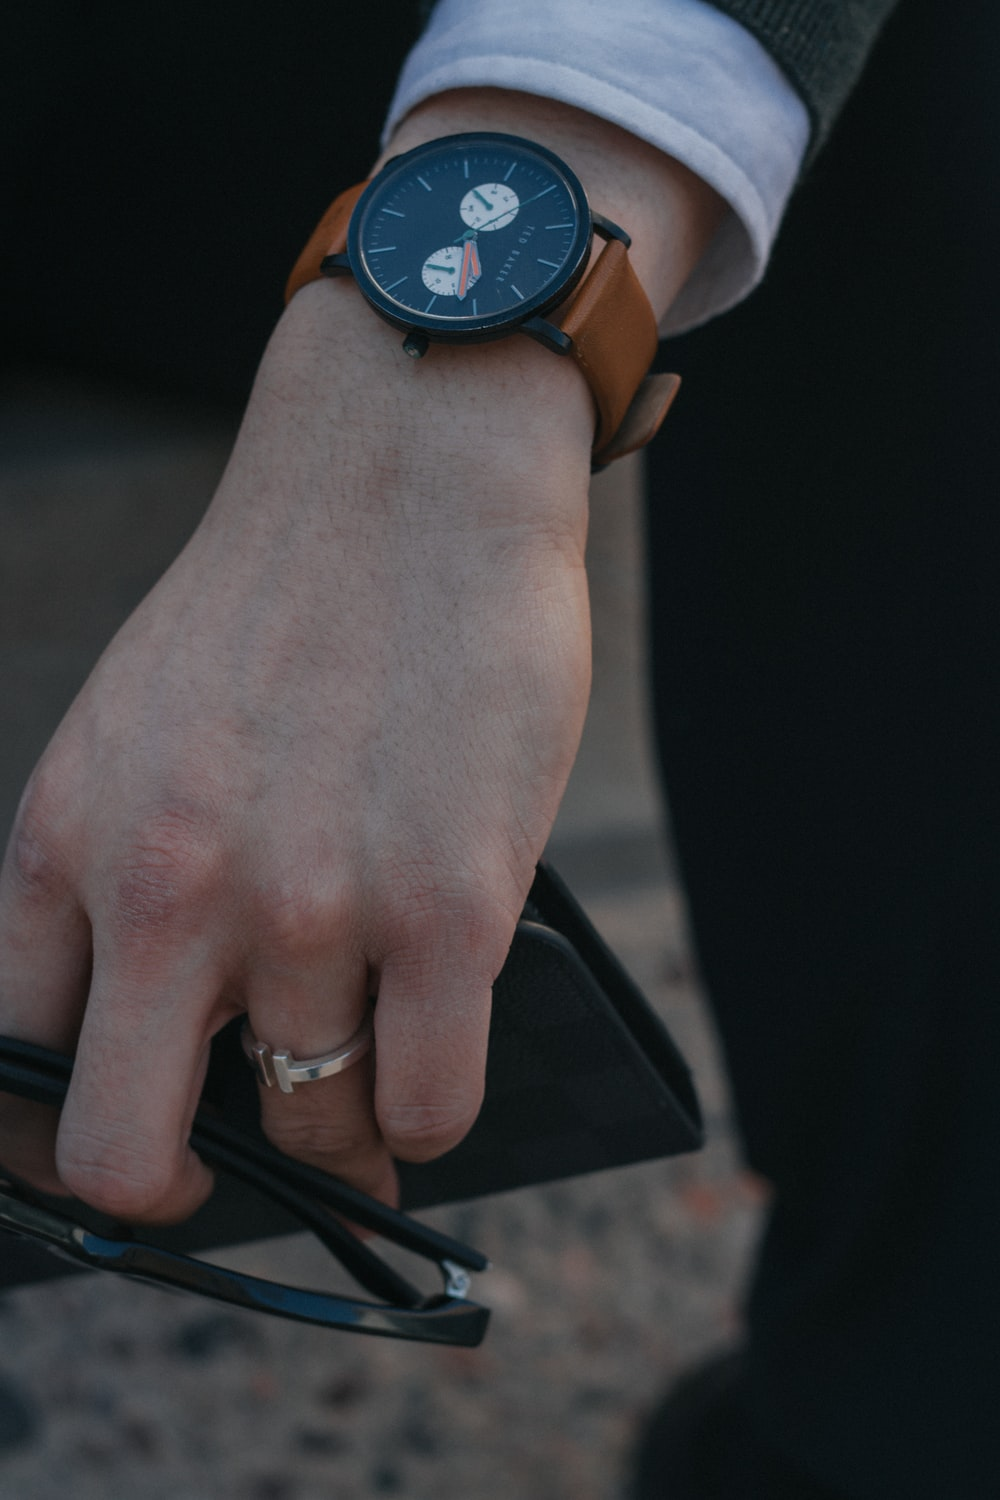 person holding sunglasses with black and brown watch